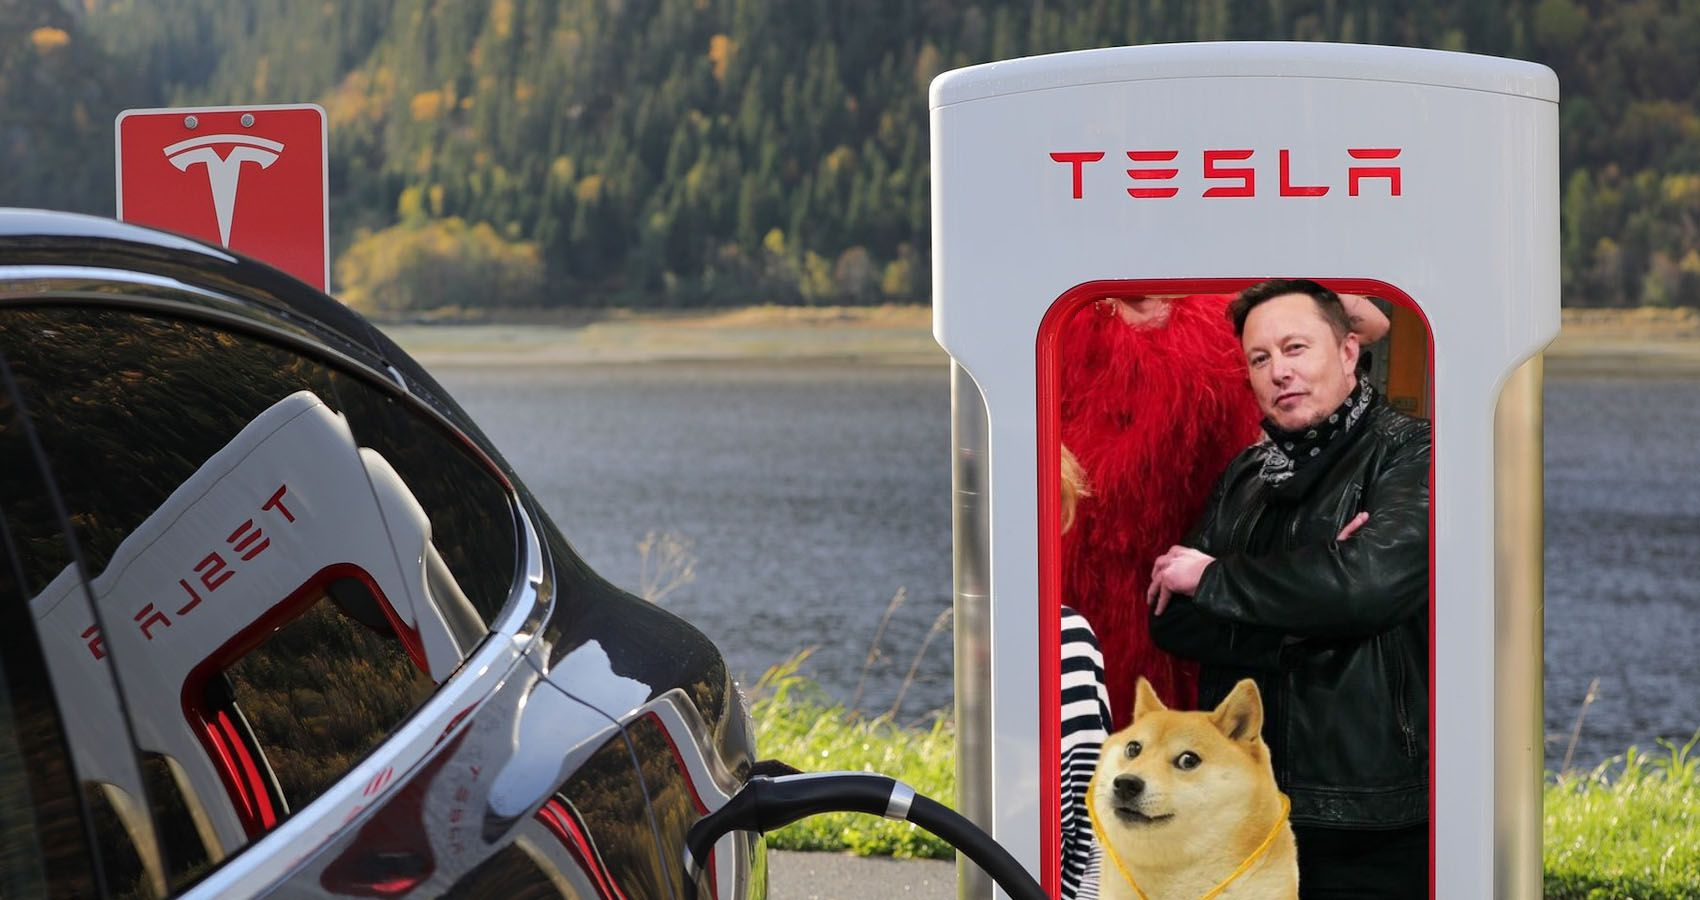 Elon Musk Asks Twitter If Tesla Should Accept Dogecoin